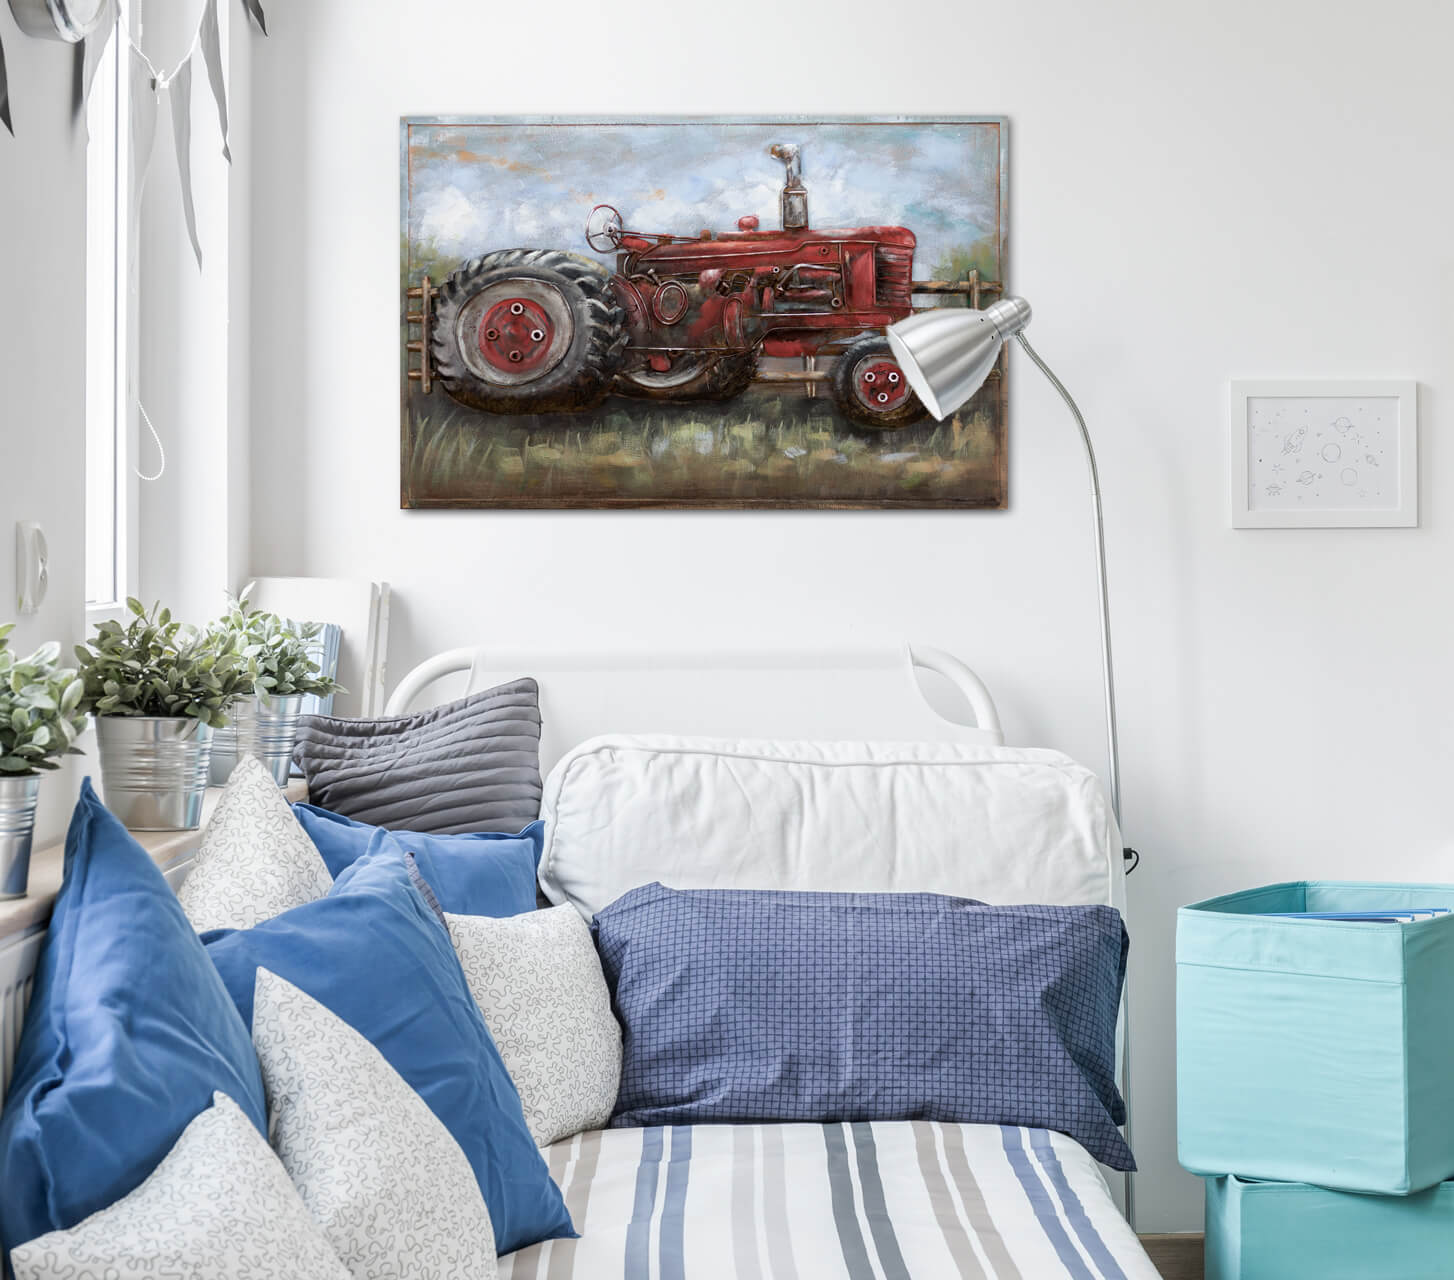 Kunstloft Cuadro En Metal Beautiful Country Life Artesanal 90x60x5cm Ebay